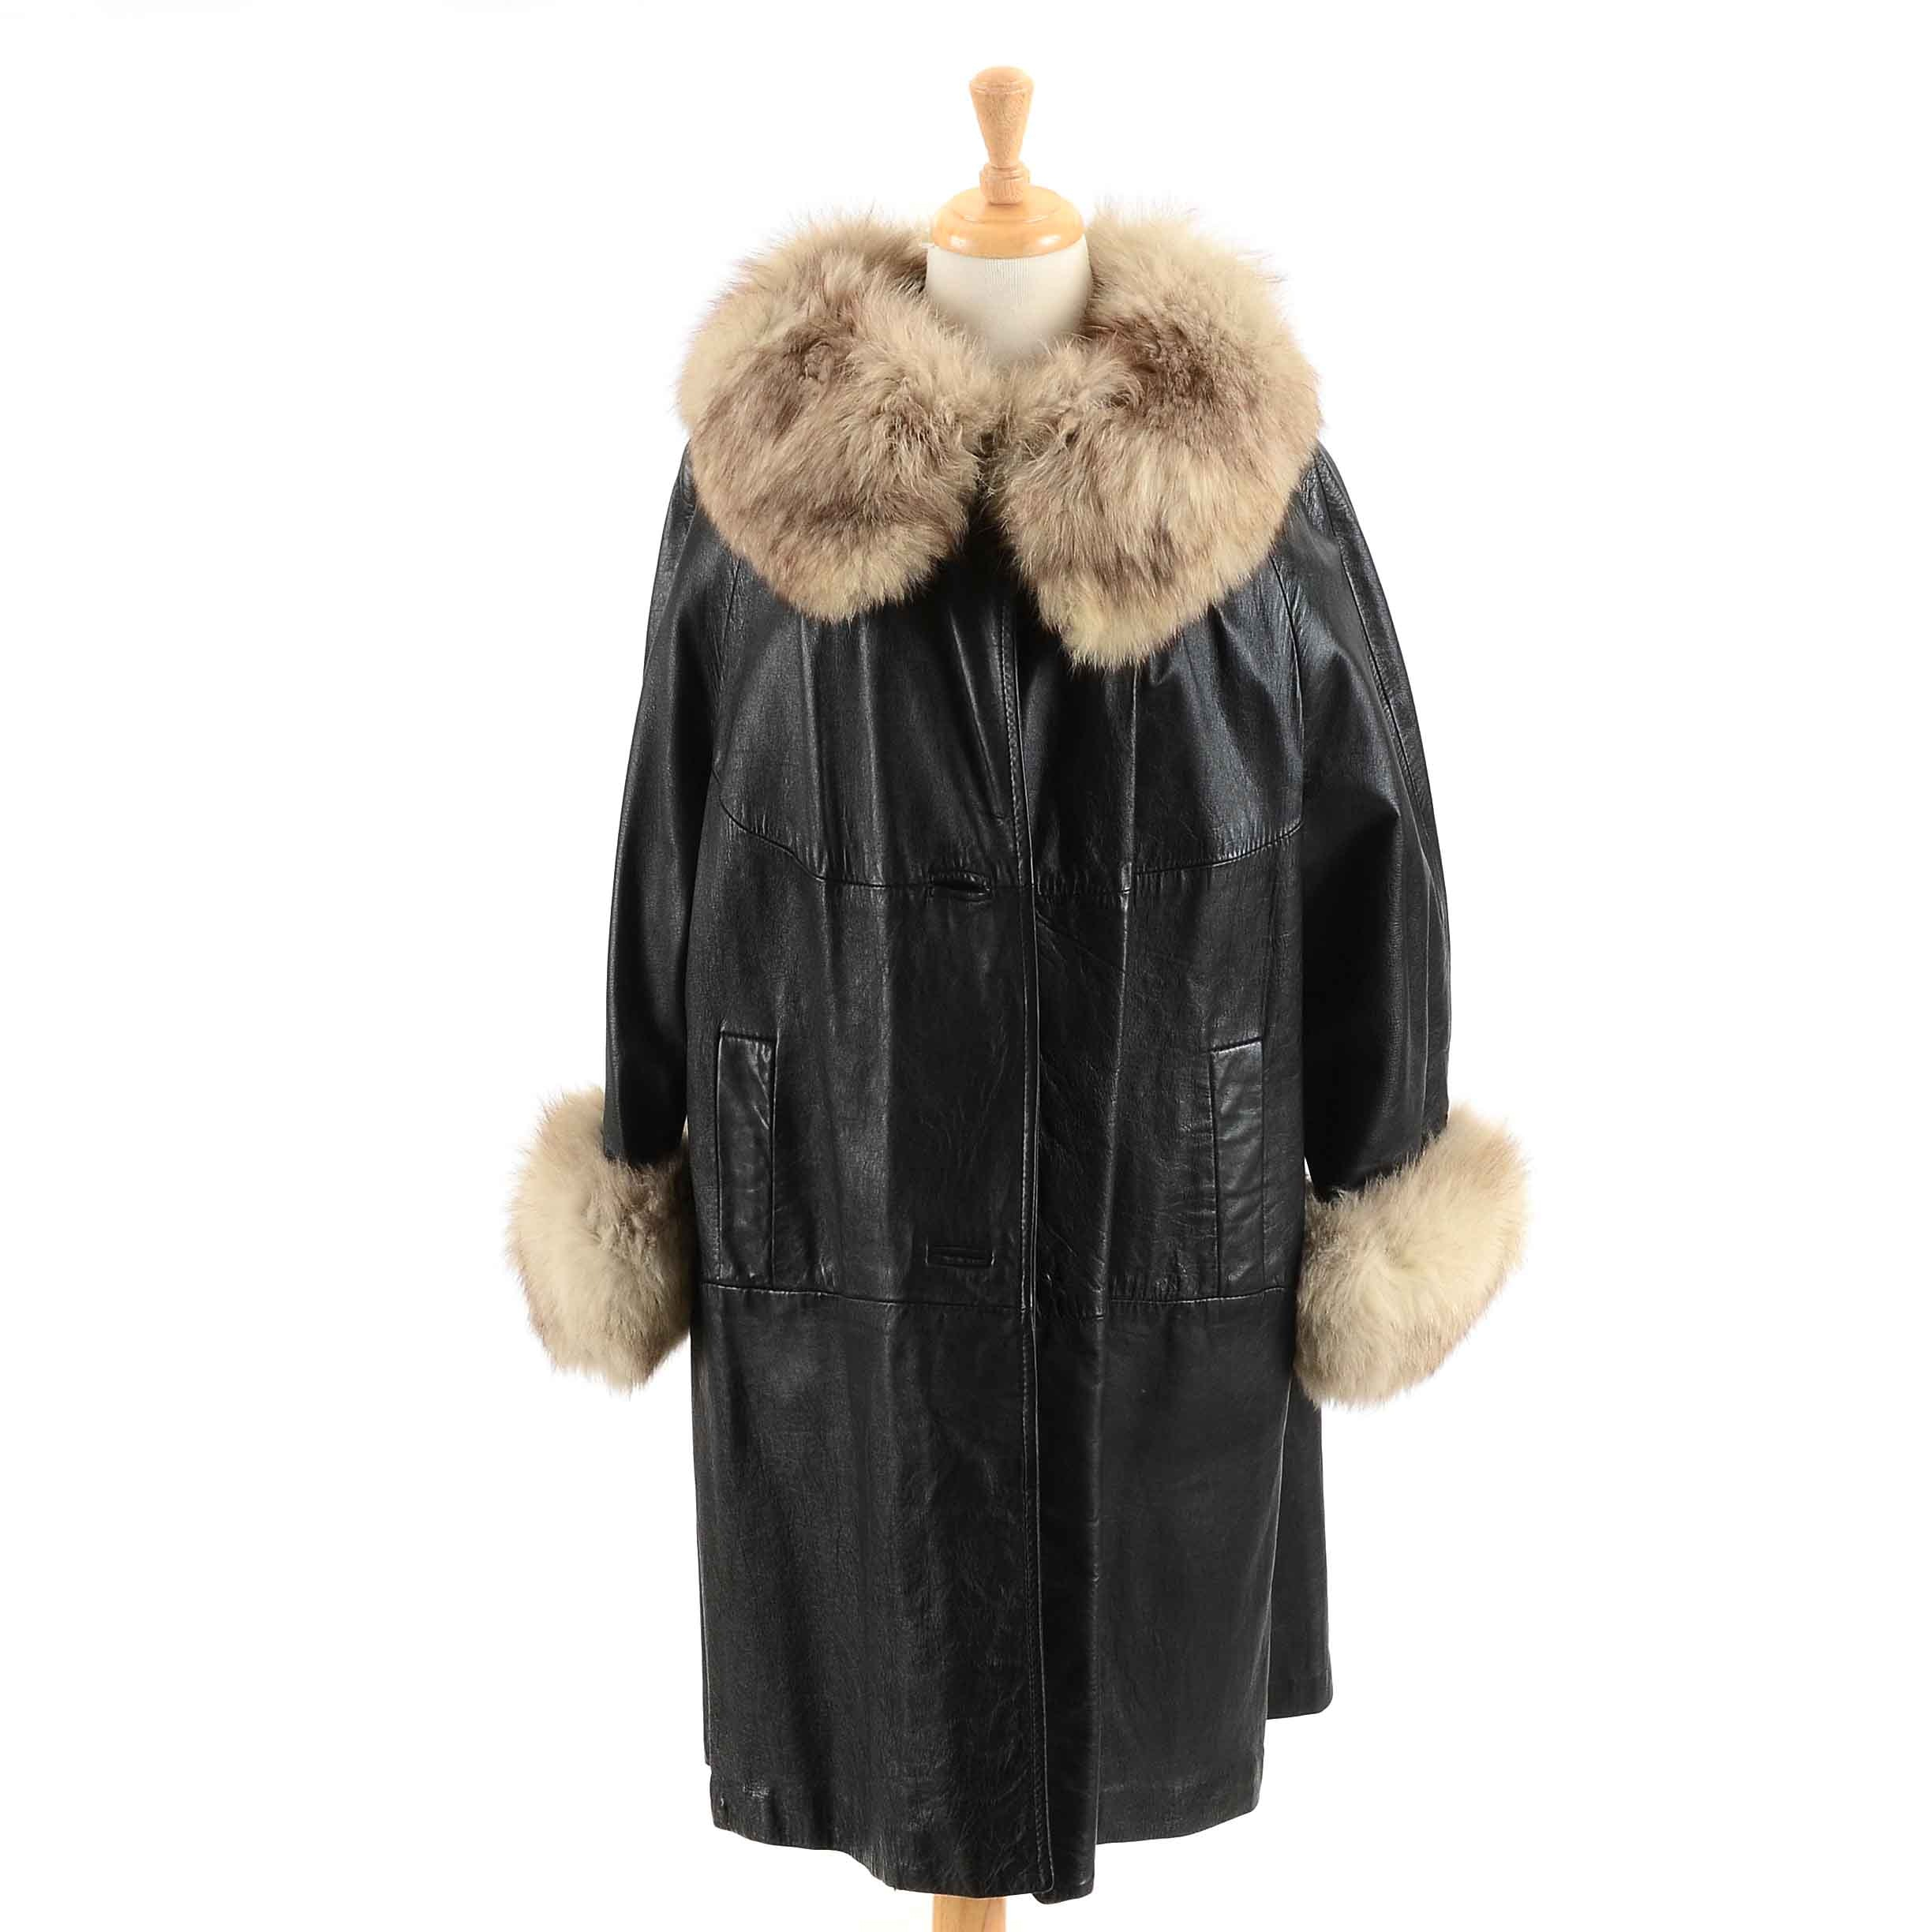 Women's Vintage Leather and Fur Jacket